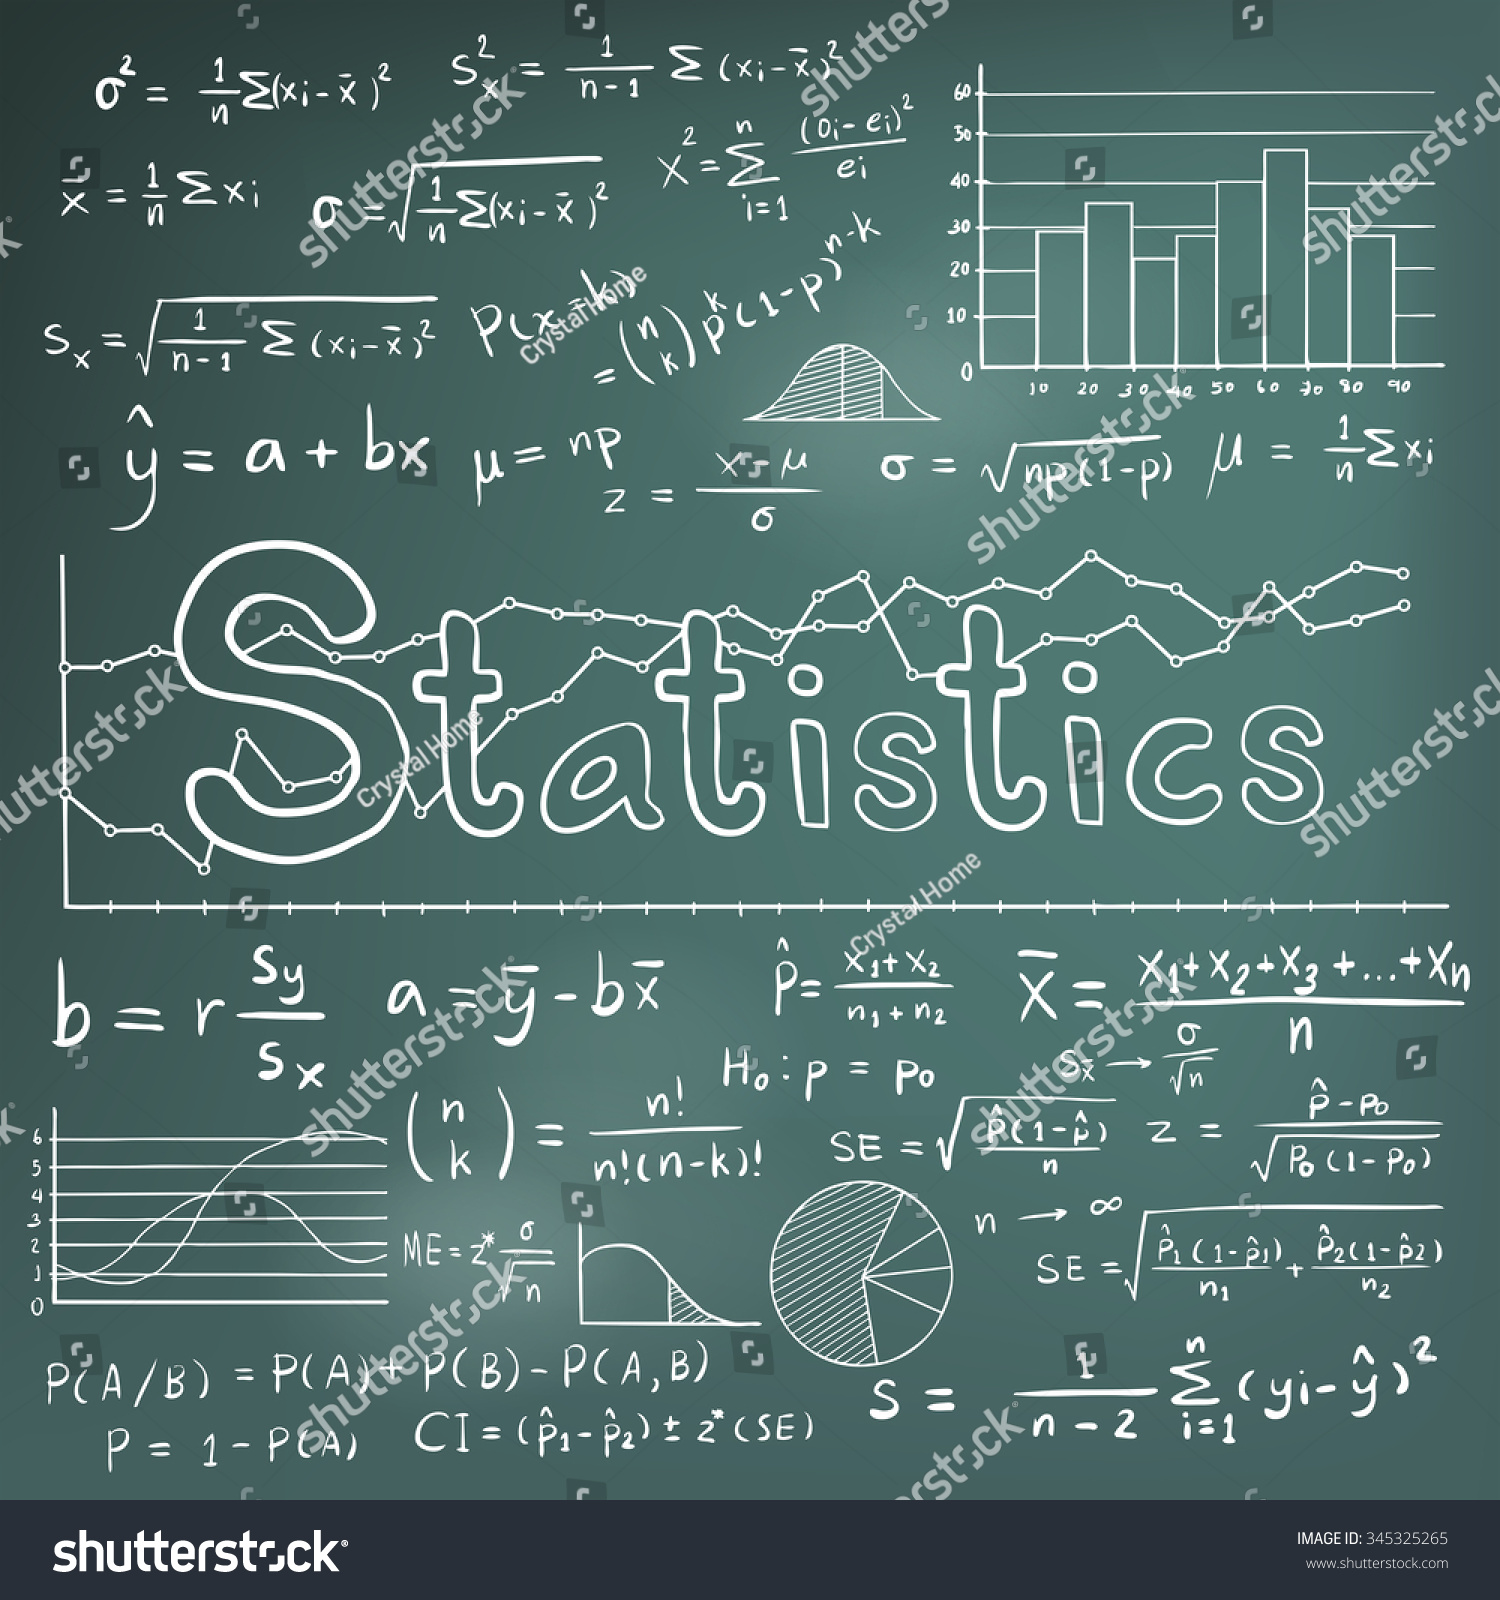 Statistic Math Law Theory Mathematical Formula Stock Vector ...